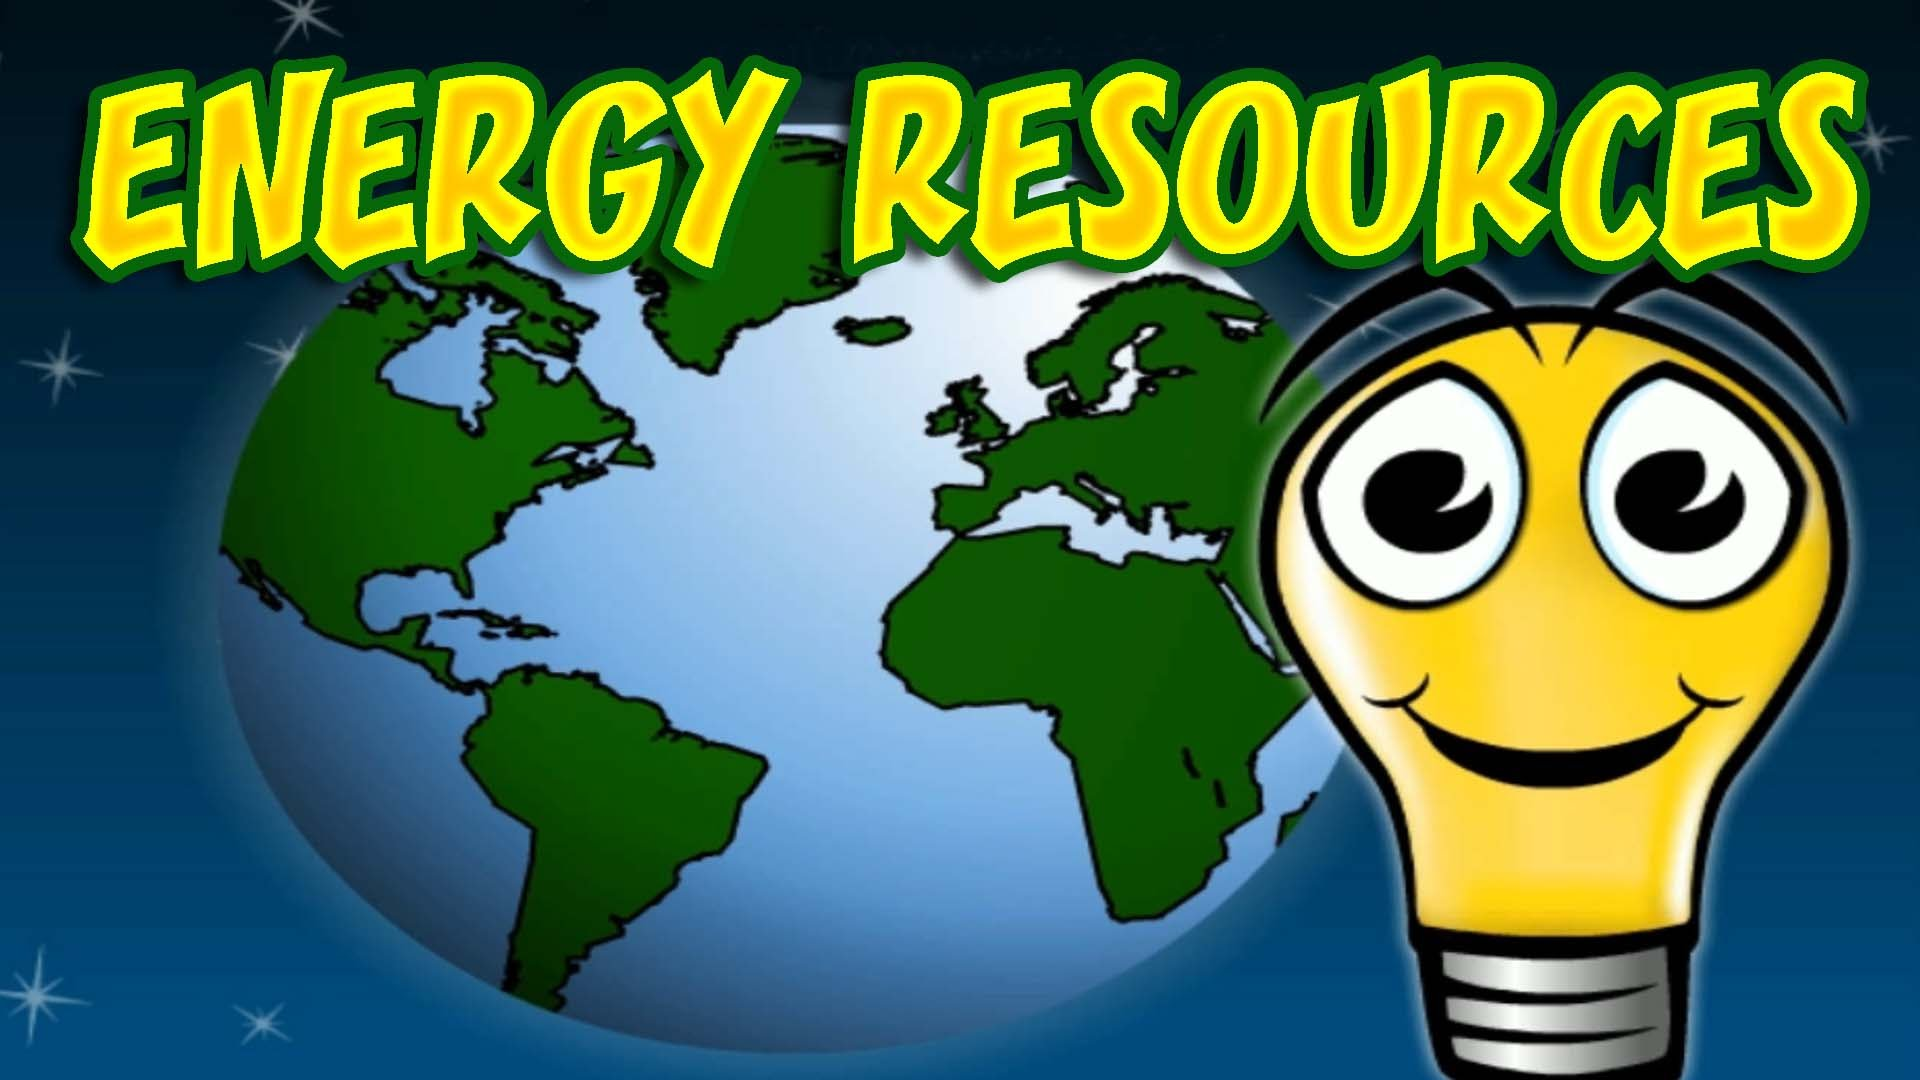 Energy clipart energy source. Renewable and non resources